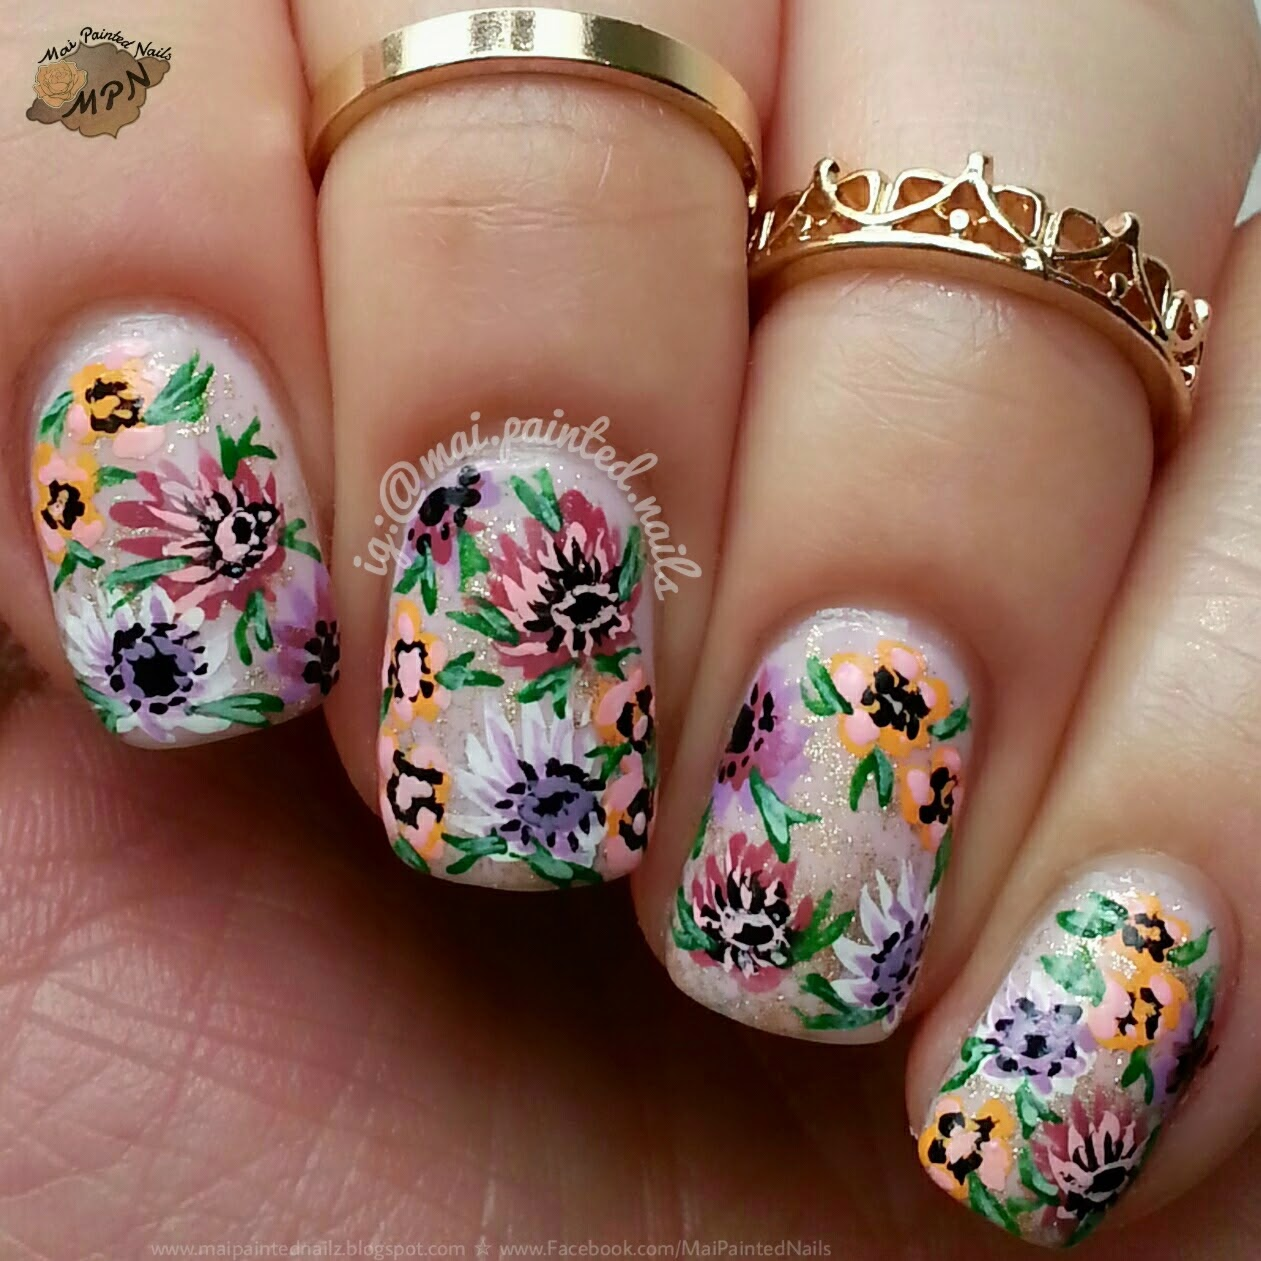 Born Pretty Store Blog: October Eye-catching Nail Designs Show (2)